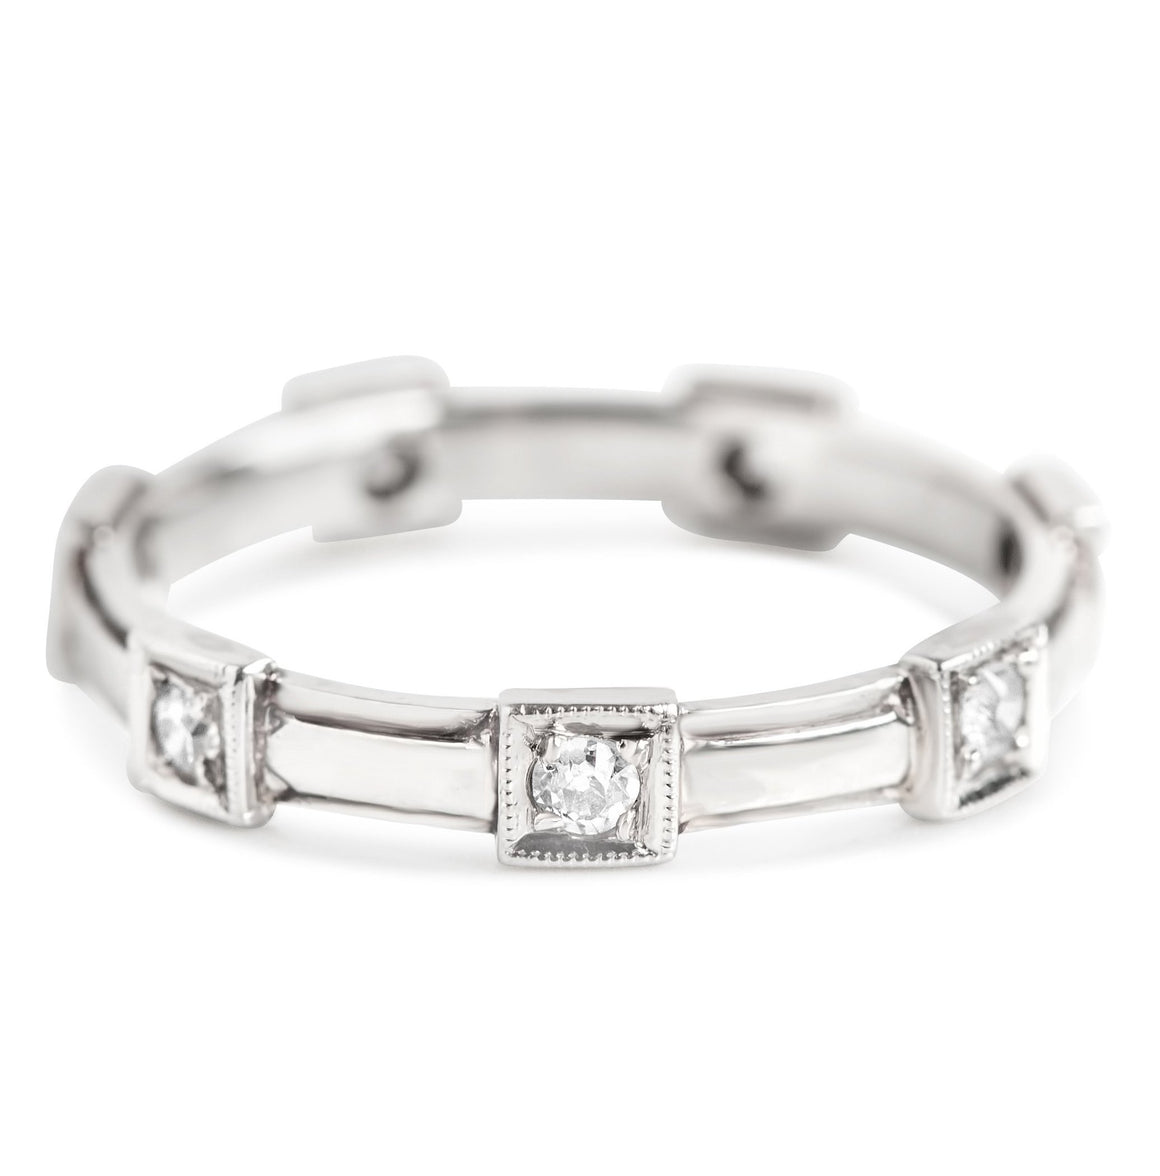 ESTATE WEDDING BAND WITH SEVEN SINGLE CUT DIAMONDS AND WHITE GOLD